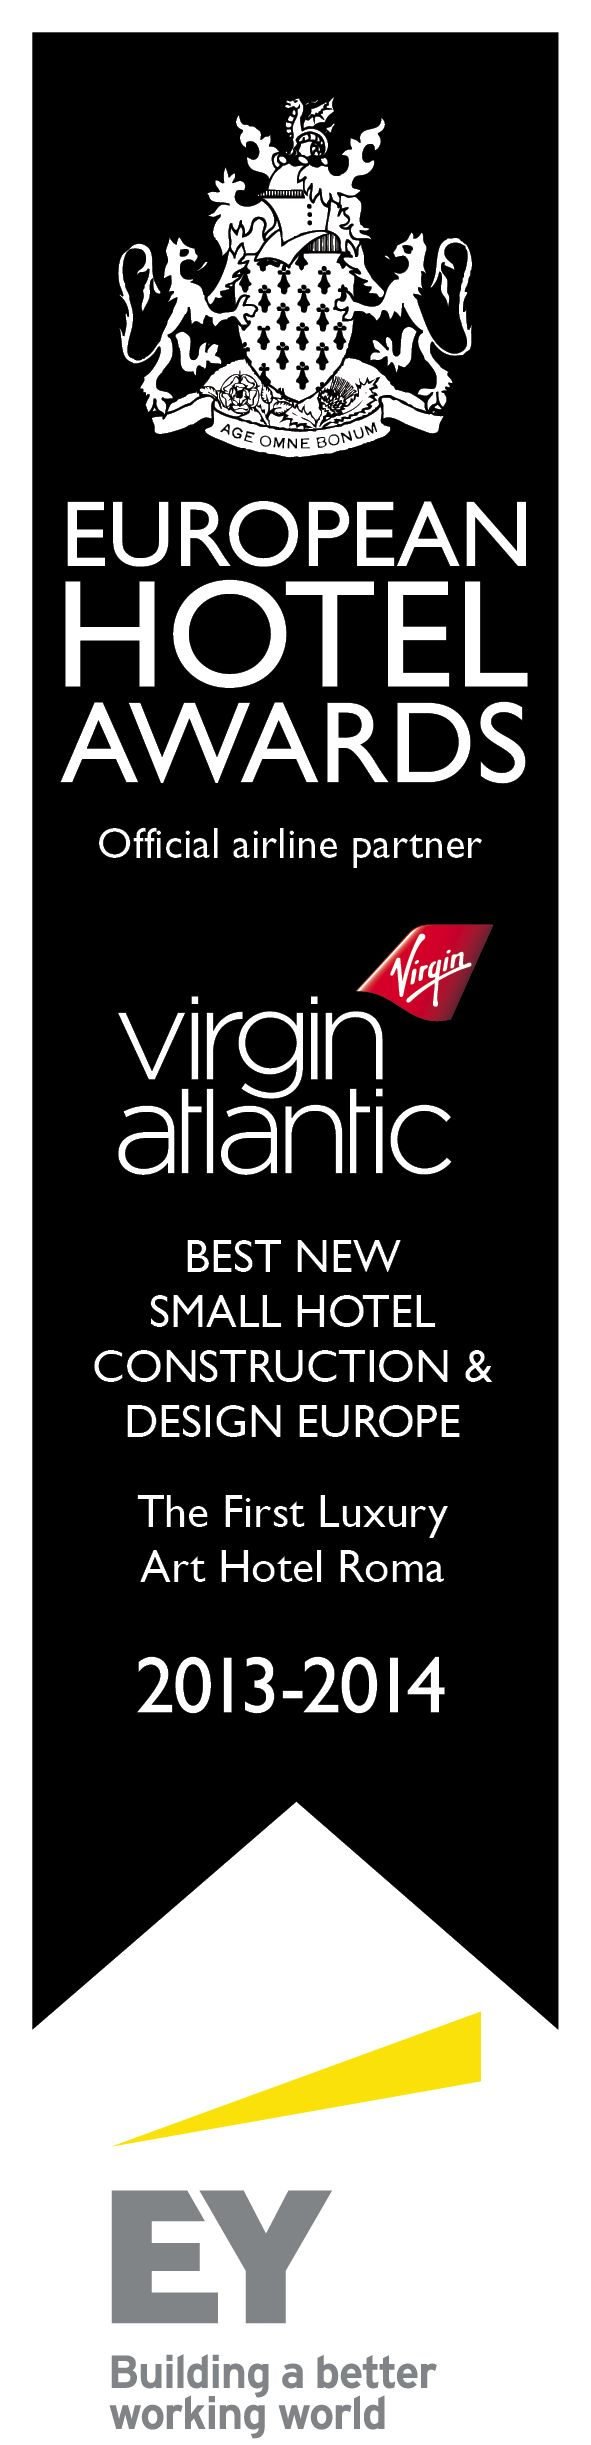 International Hotel Award 2013 - The First Luxury Art Hotel chosen as the Best Small Hotel Construction and Design in Europe